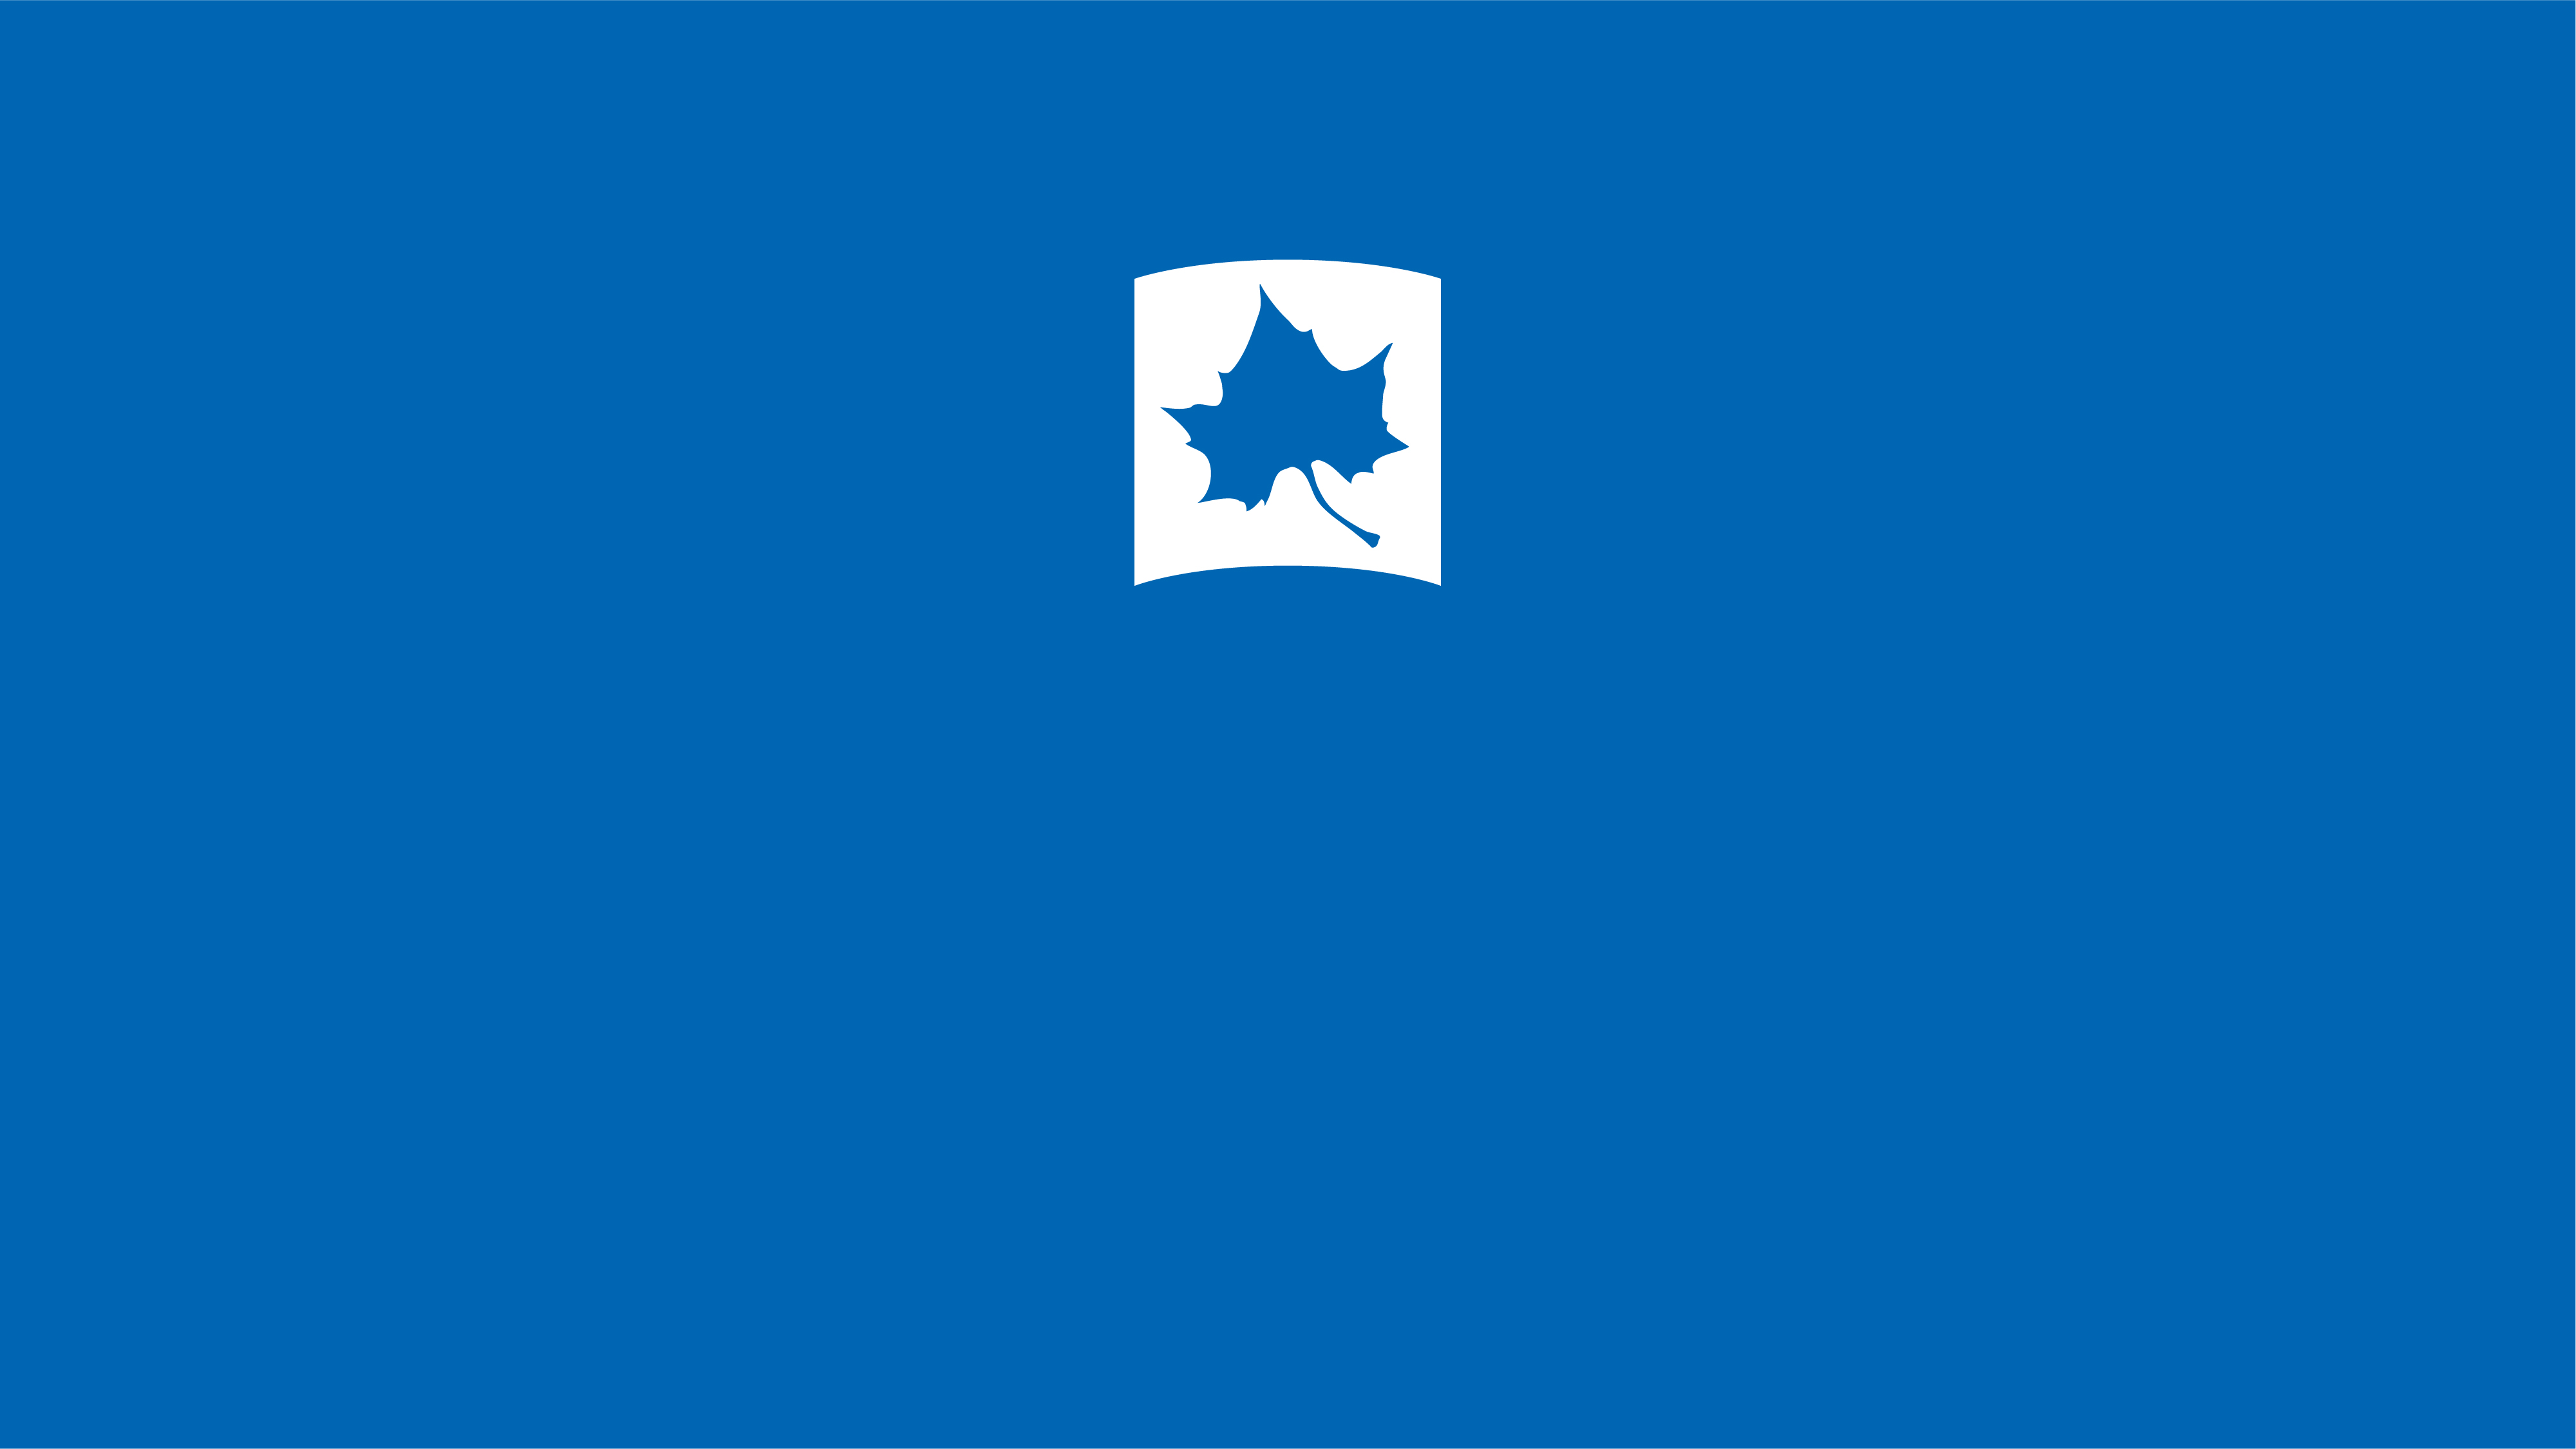 powerpoint-images_new-bluecover.jpg